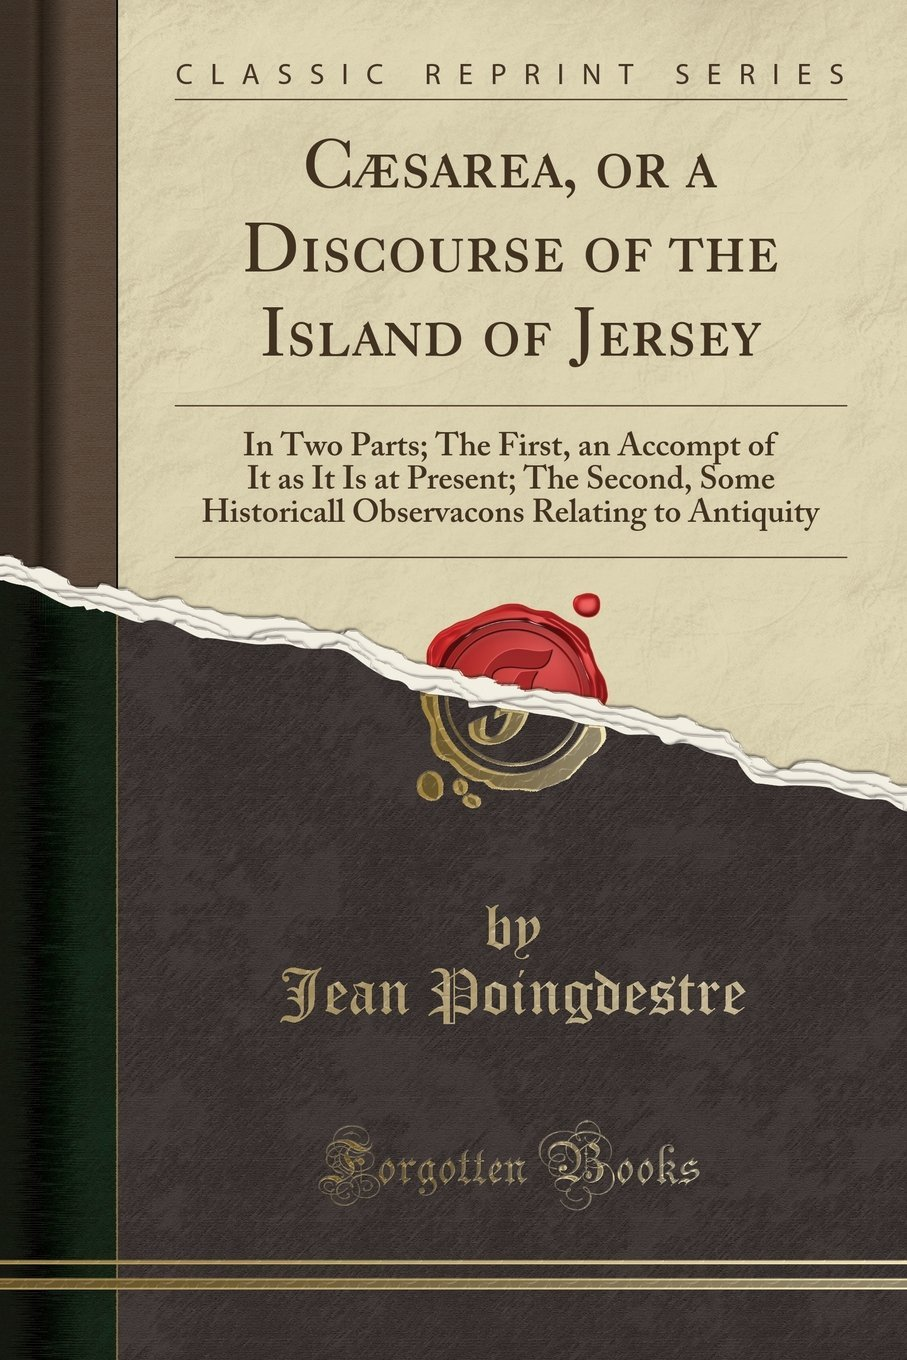 Cæsarea, or a Discourse of the Island of Jersey: In Two Parts; The First, an Accompt of It as It Is at Present; The Second, Some Historicall Observacons Relating to Antiquity (Classic Reprint) pdf epub